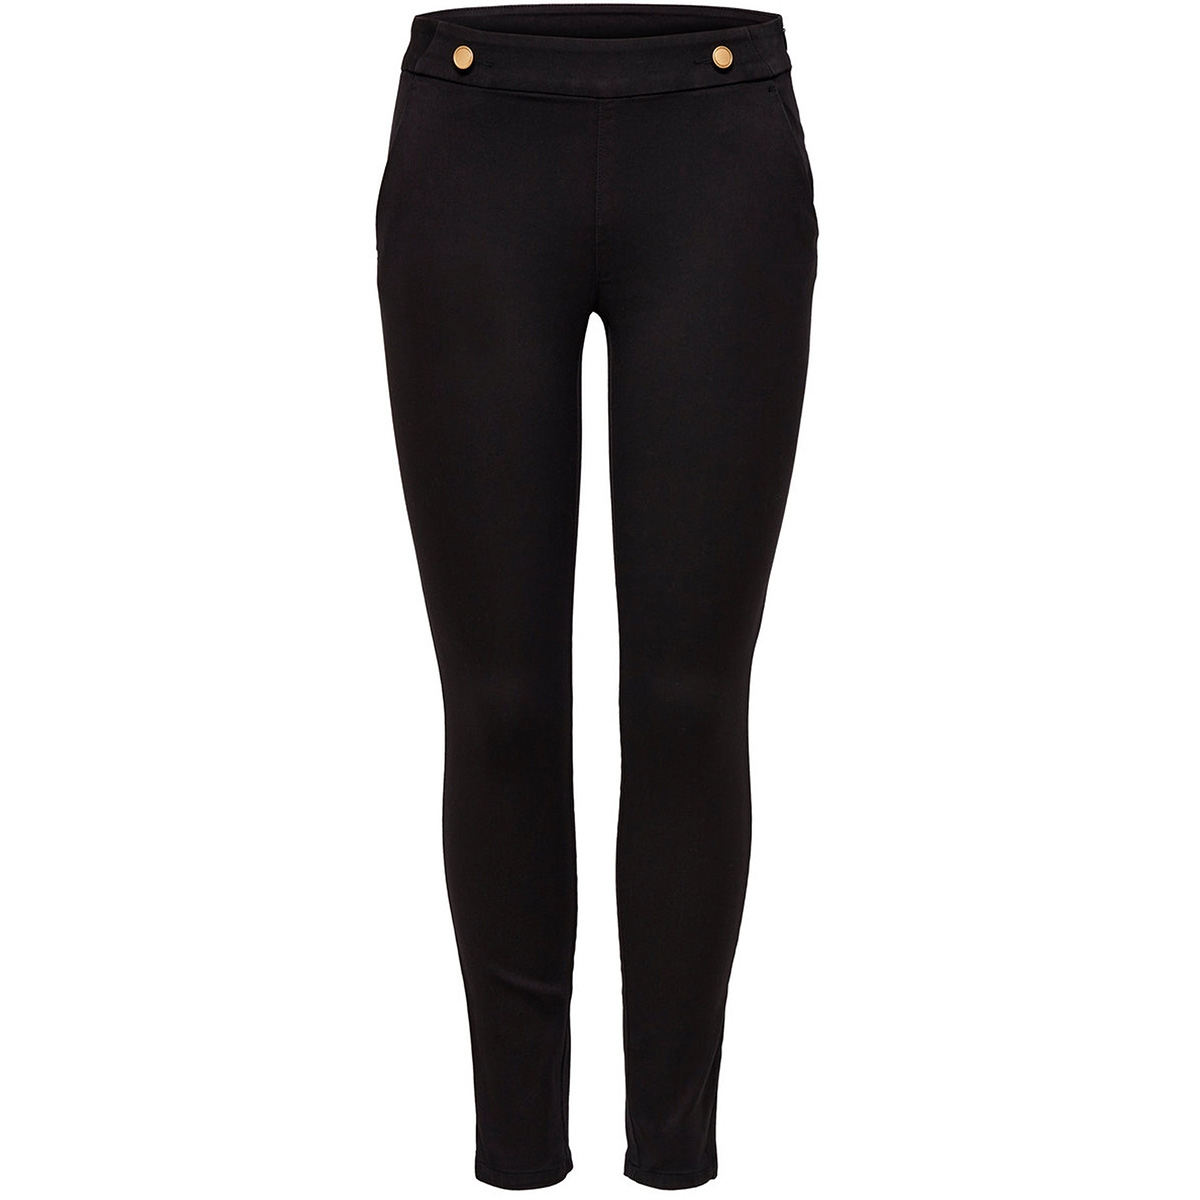 jdytara button pant pnt 15147480 jacqueline de yong broek black/gold trim